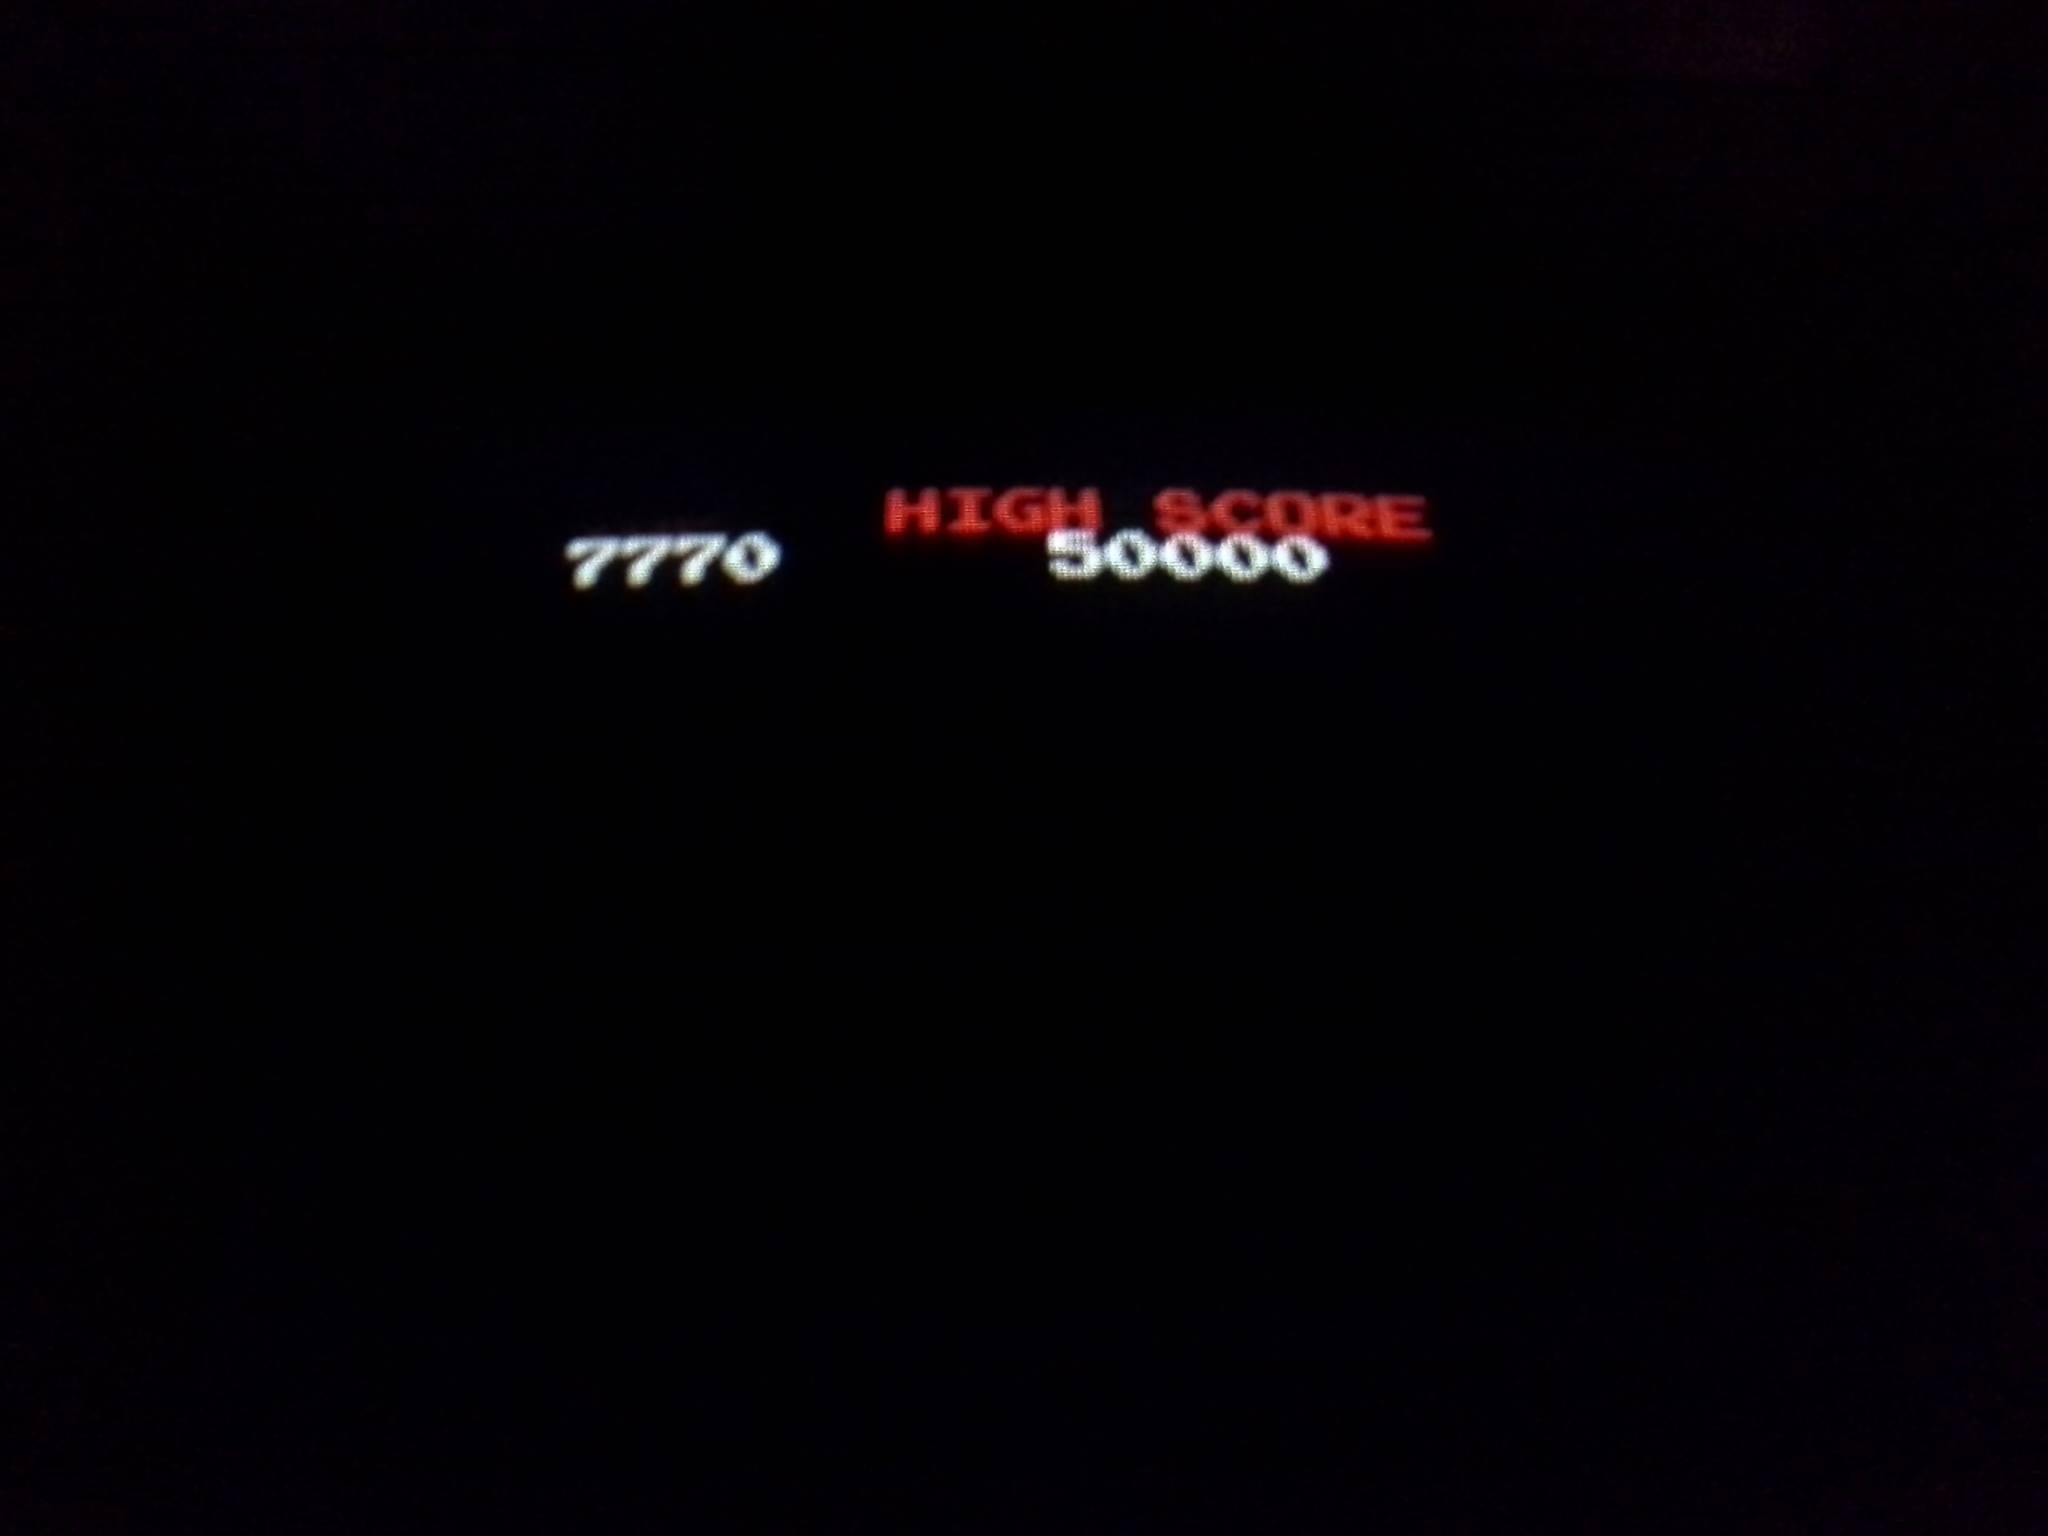 Arkanoid 7,770 points